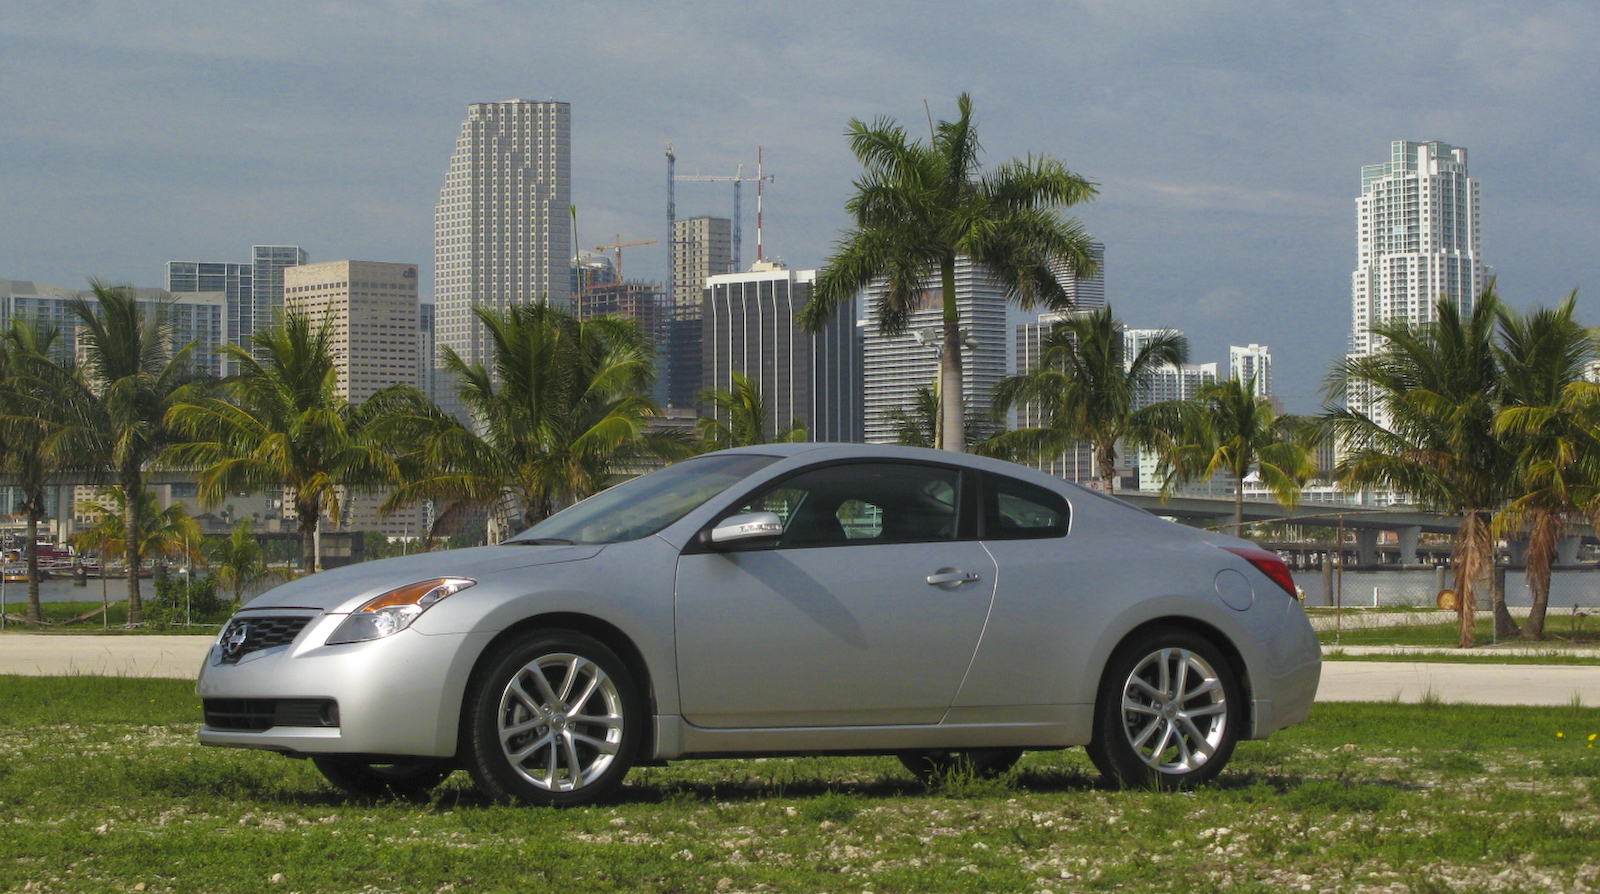 2009 Nissan Altima Coupe 3.5 SE Review   Top Speed. »